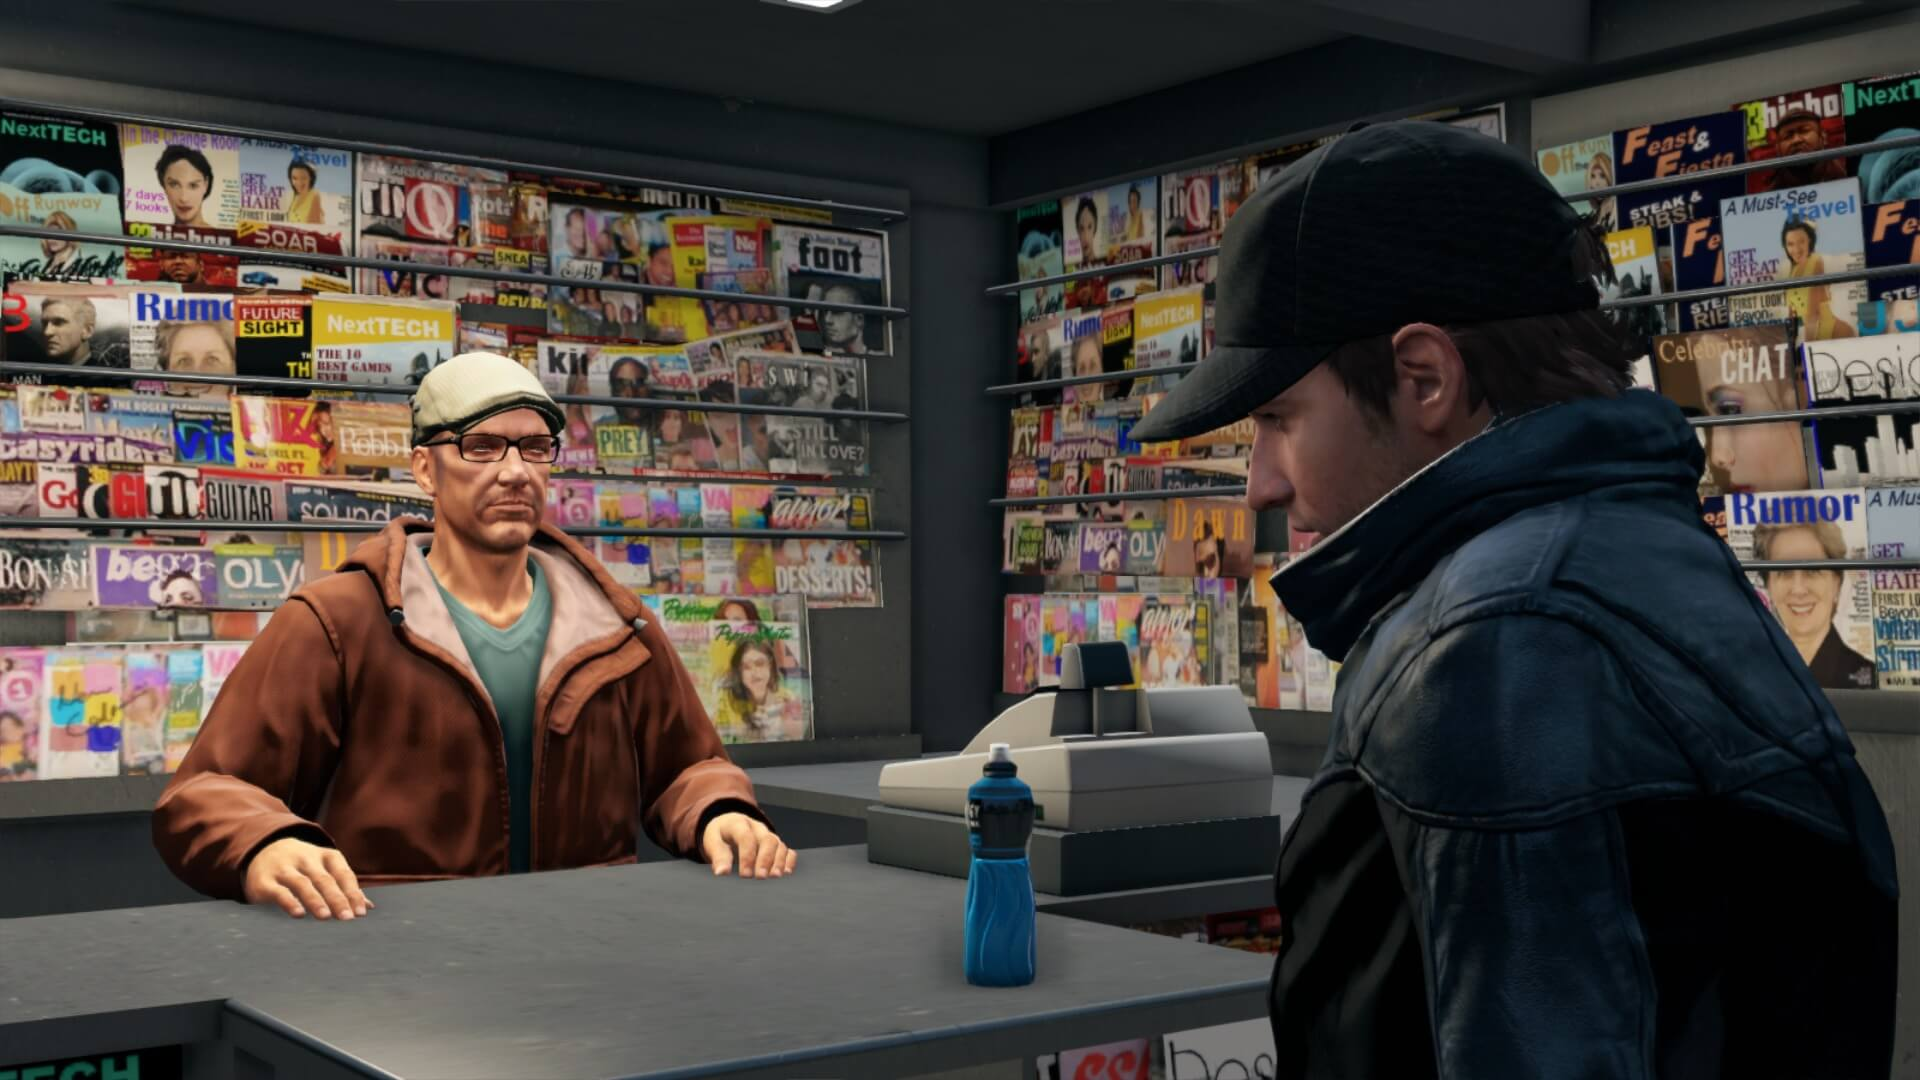 WATCH_DOGS™_20140601223208